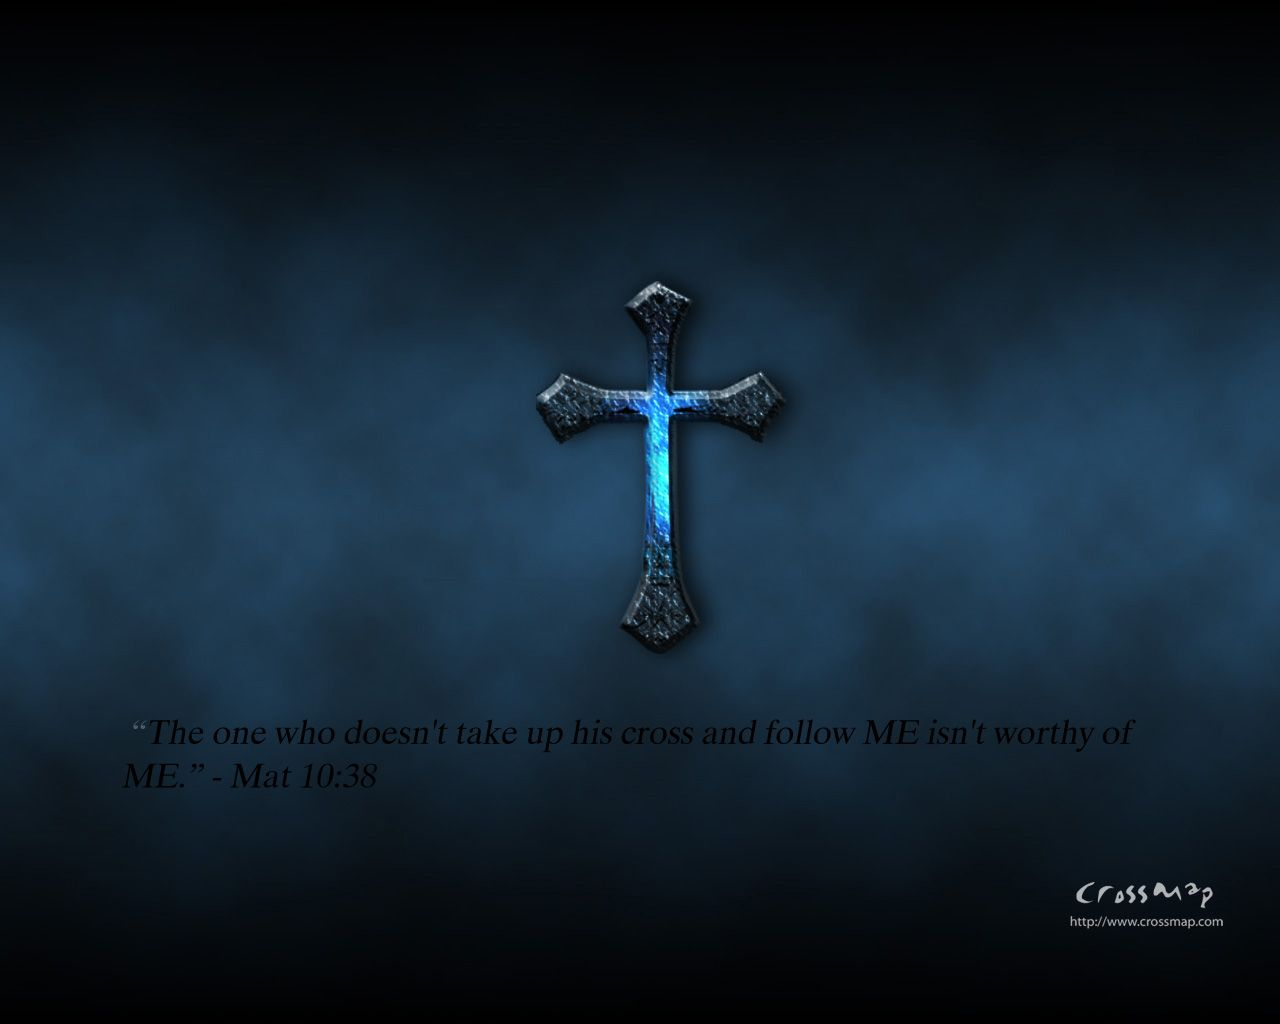 comTake the Cross Wallpaper   Christian Wallpapers and Backgrounds 1280x1024